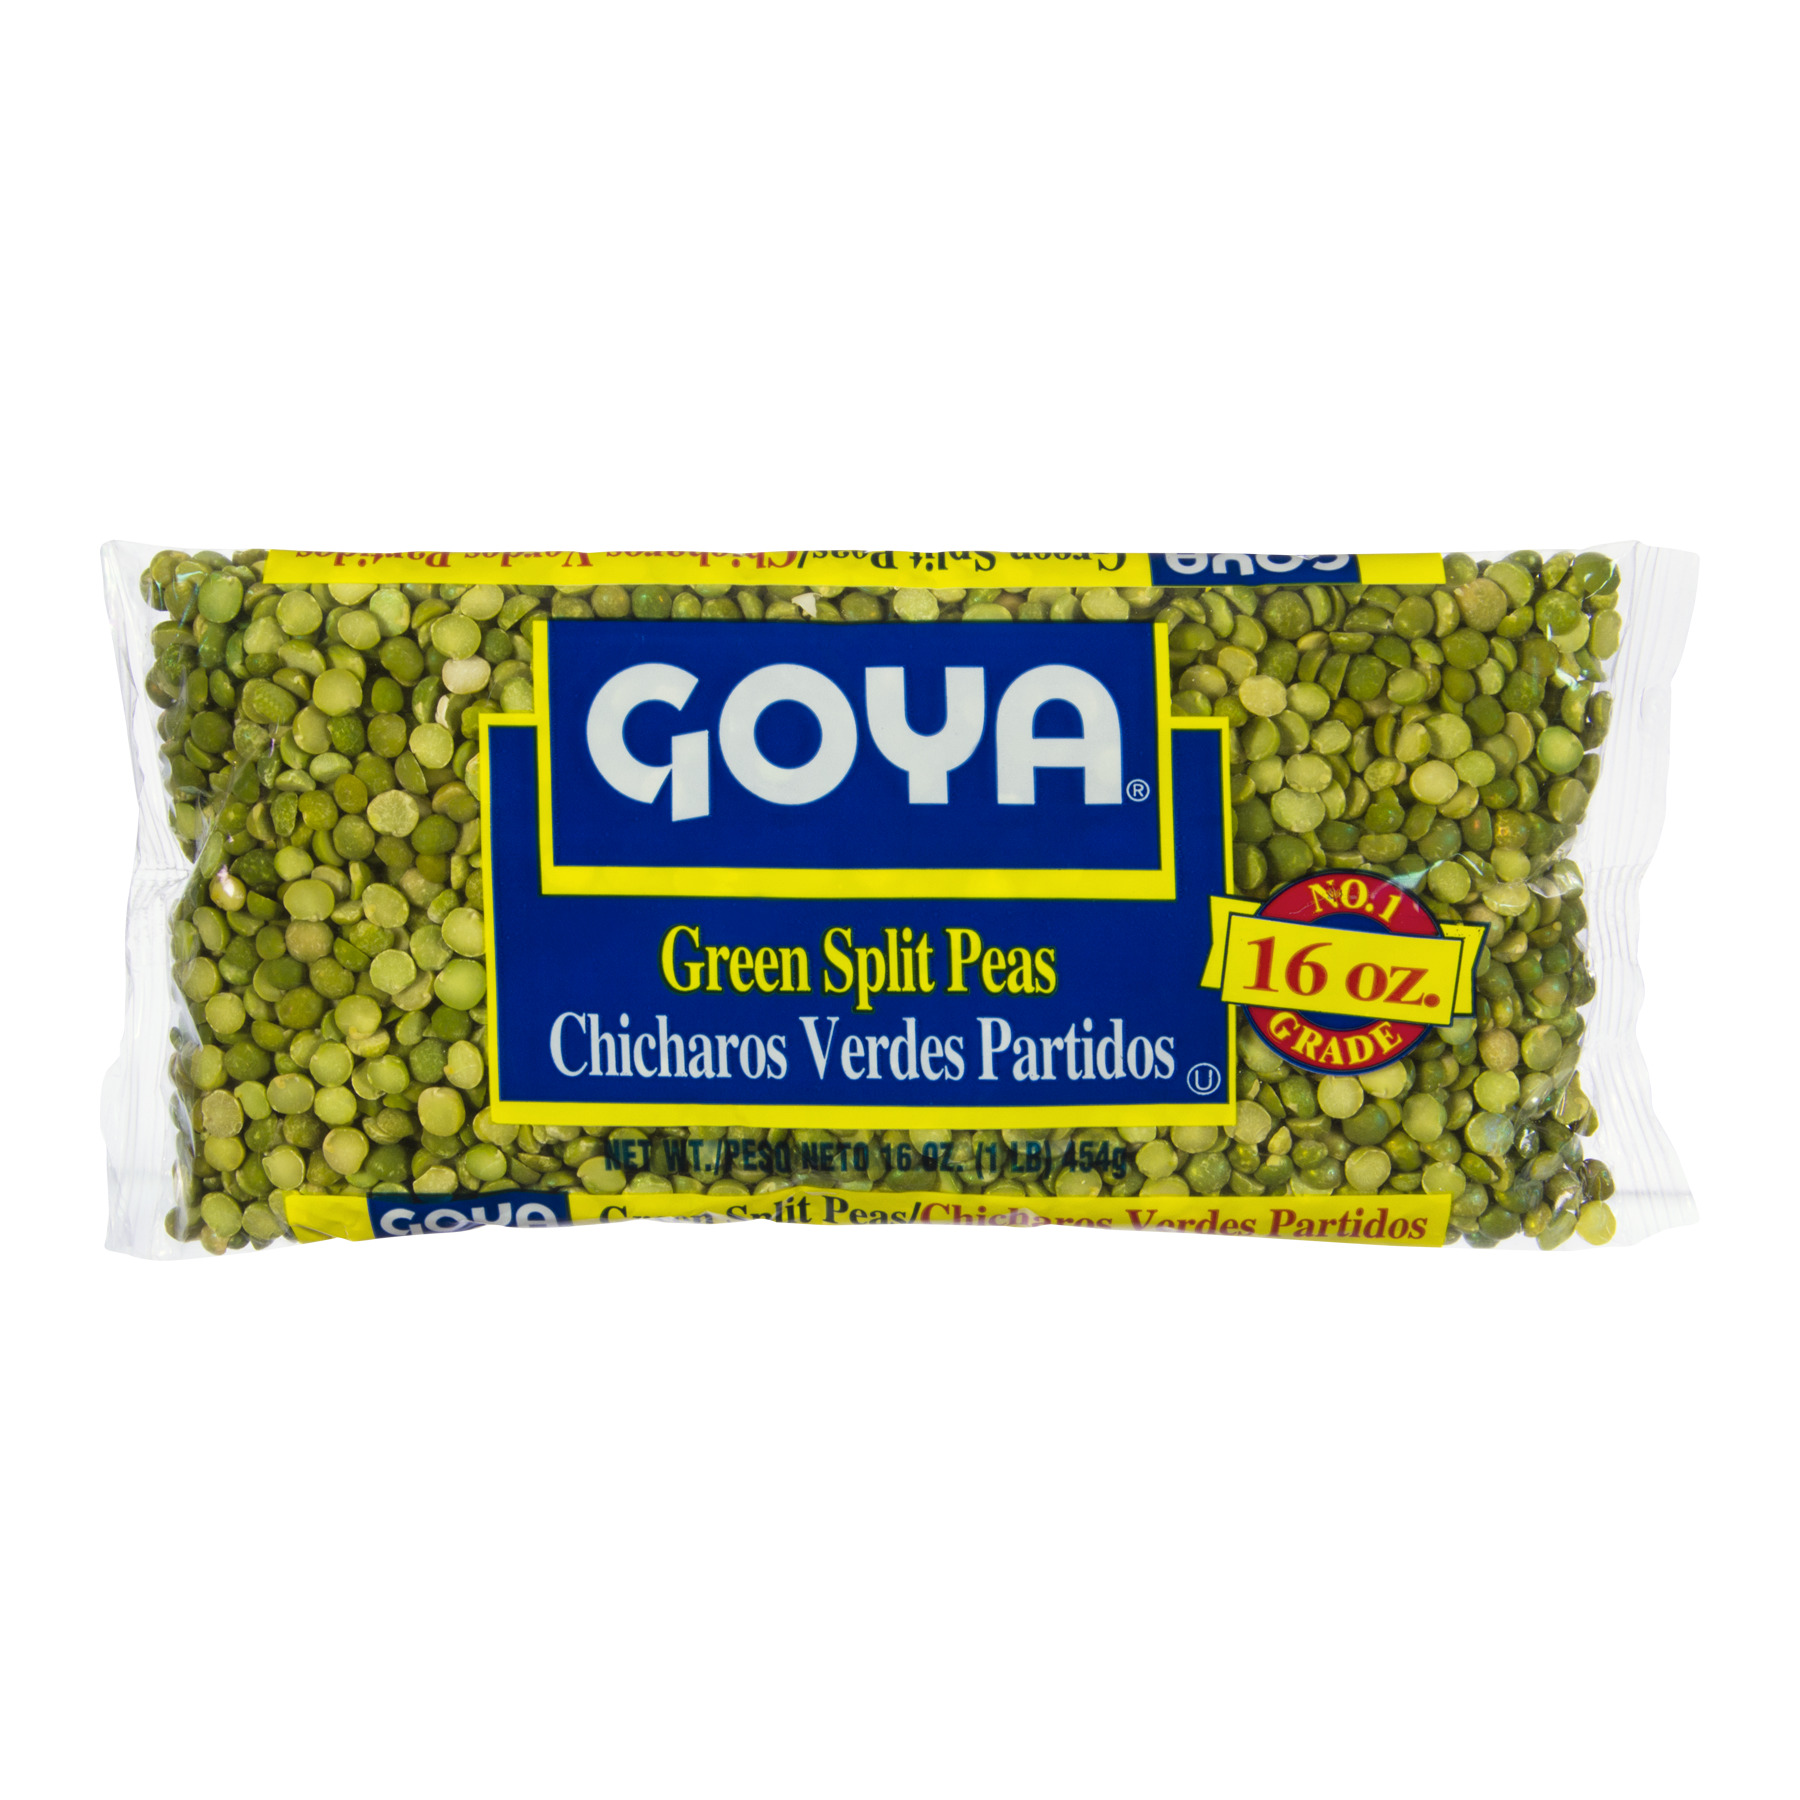 Goya Green Split Peas, 16oz